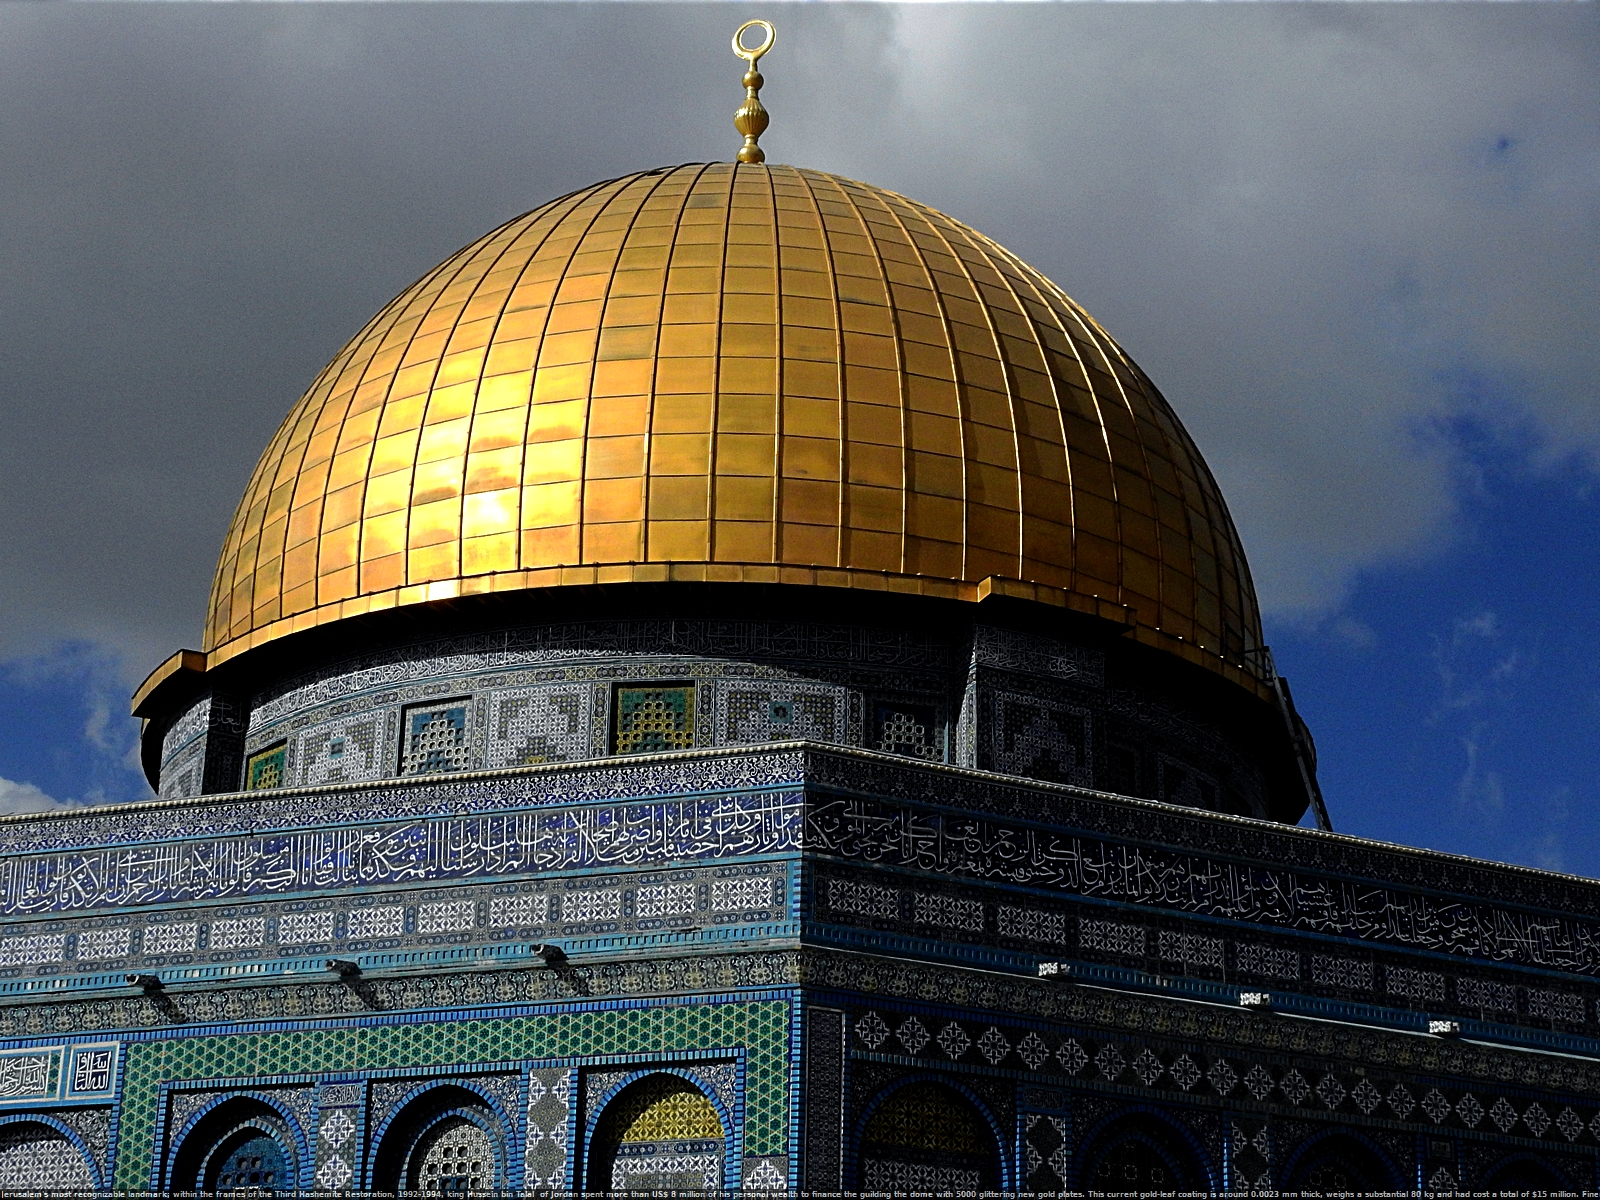 Dome of the Rock, a close up of the Jerusalem's most recognizable landmark; within the frames of the Third Hashemite Restoration, 1992-1994, king Hussein bin Talal  of Jordan spent more than US$ 8 million of his personal wealth to finance the guilding the dome with 5000 glittering new gold plates. This current gold-leaf coating is around 0.0023 mm thick, weighs a substantial 80 kg and had cost a total of $15 million. Fine Art Photography by Zbigniew Halat